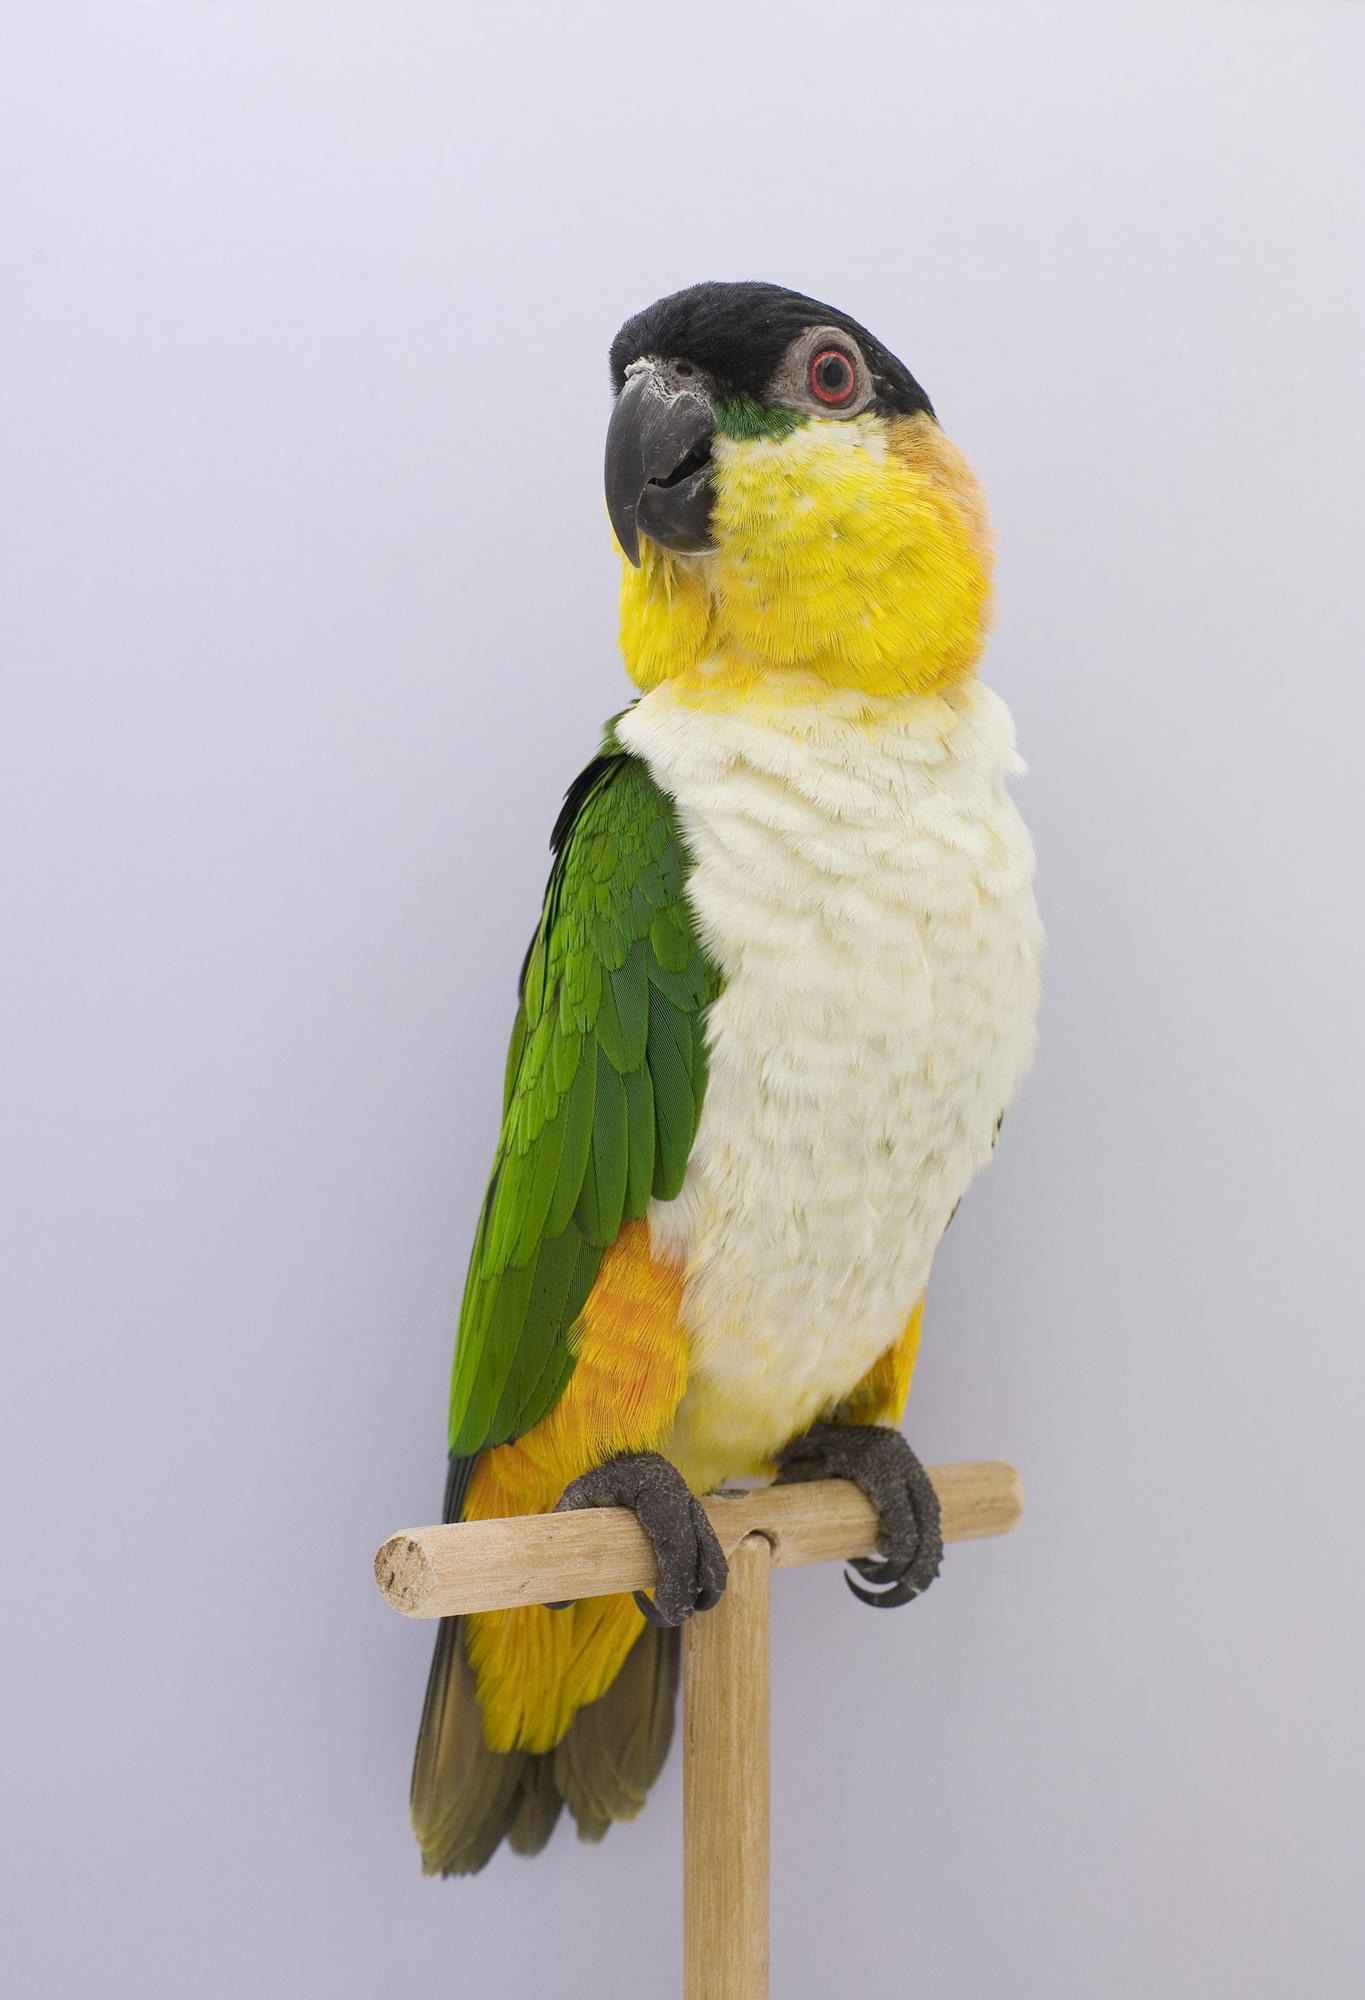 Black Headed Caique #1, 2009 | Page 2 | The Photographers' Gallery